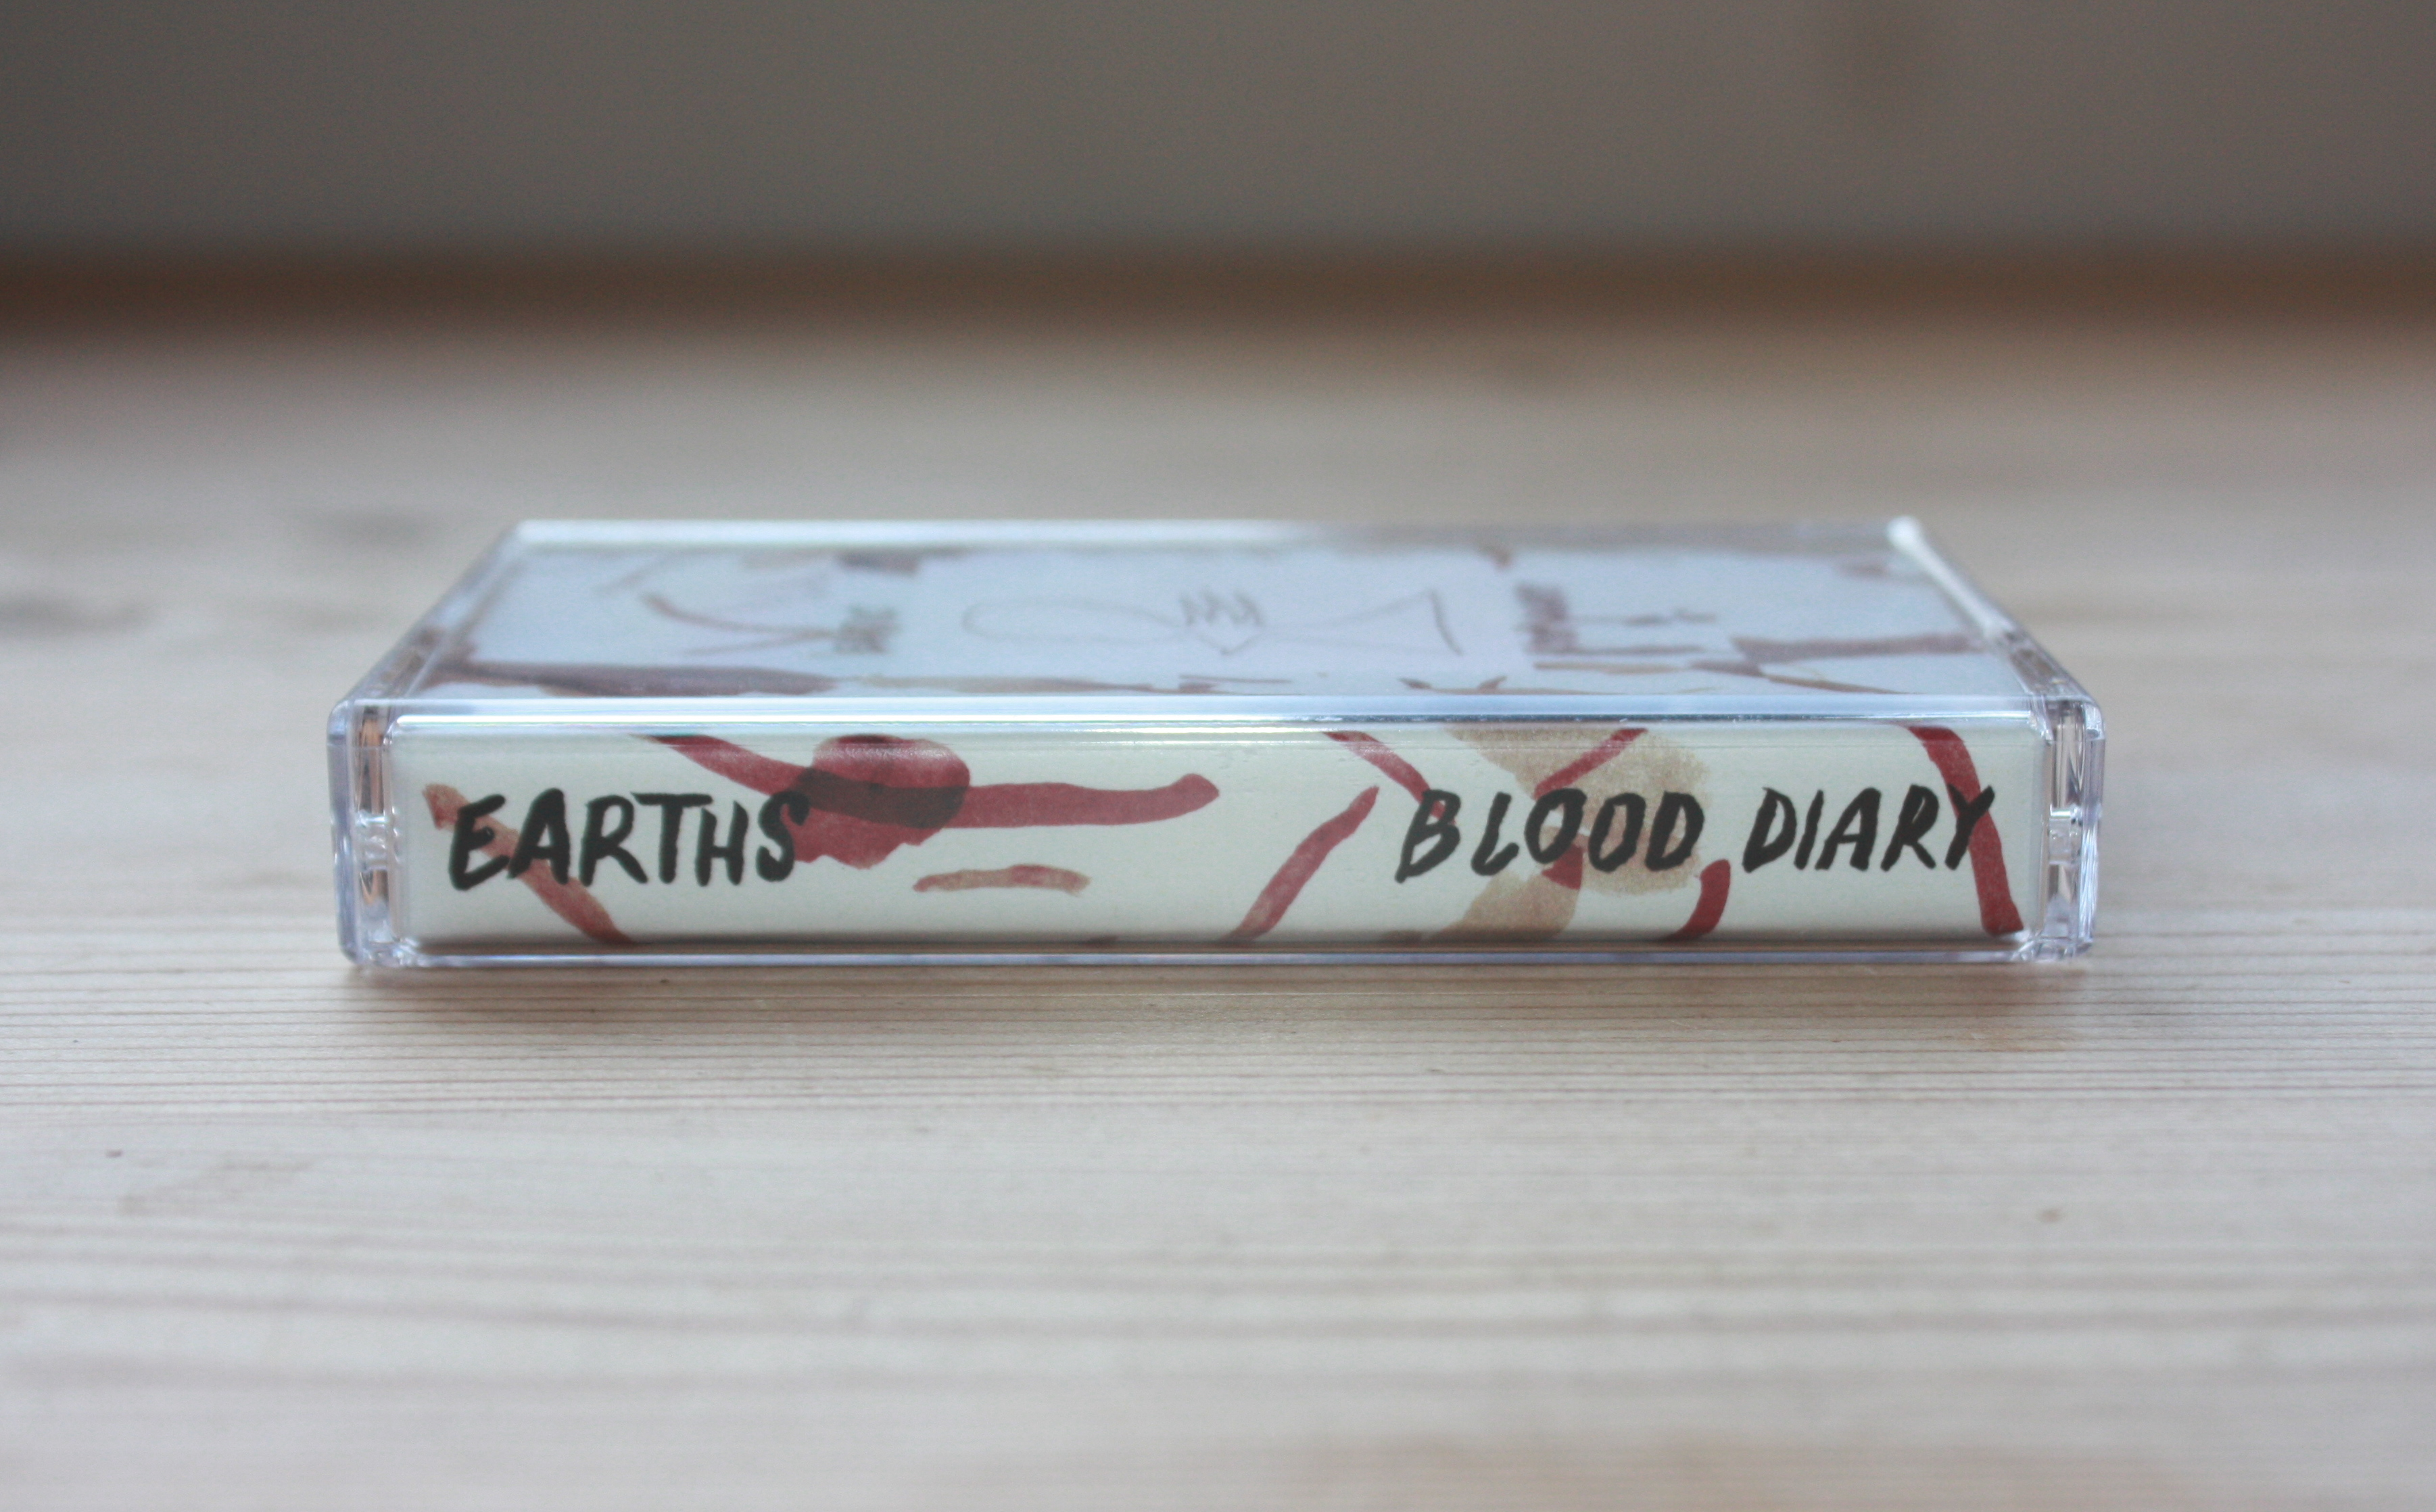 Earths - Blood Diary